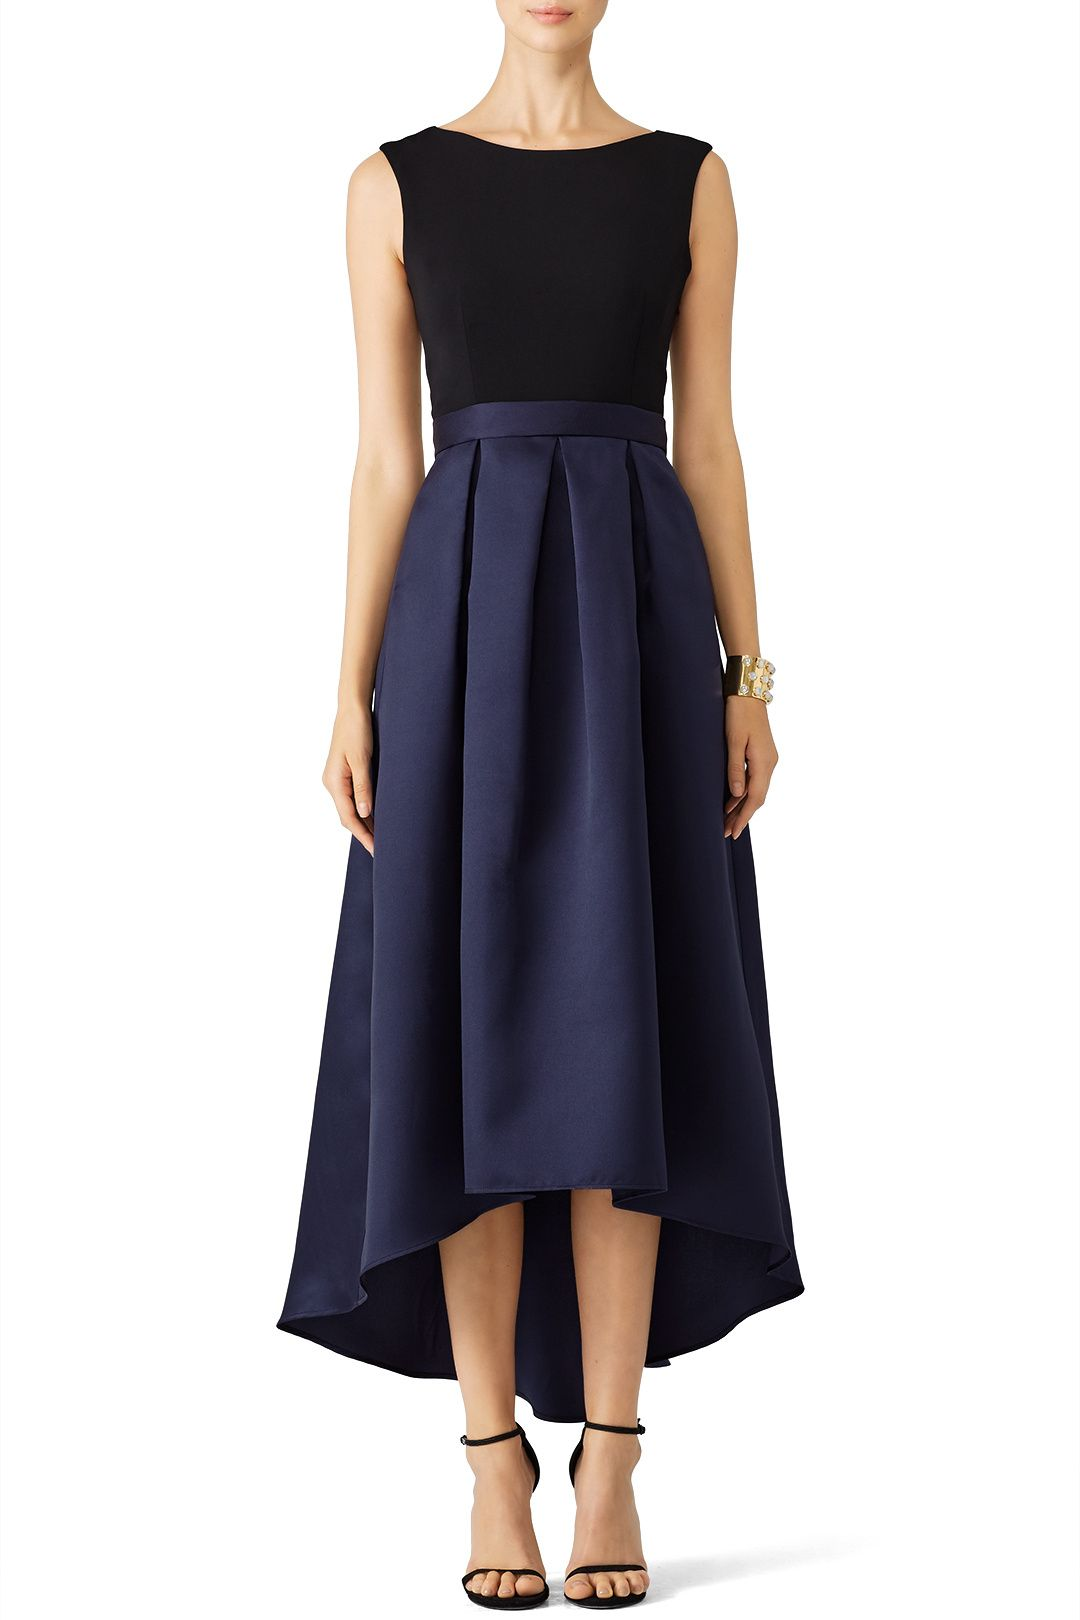 6e87cb131c5c Rent Colorblock High Low Dress by Hutch for $50 - $65 only at Rent the  Runway.